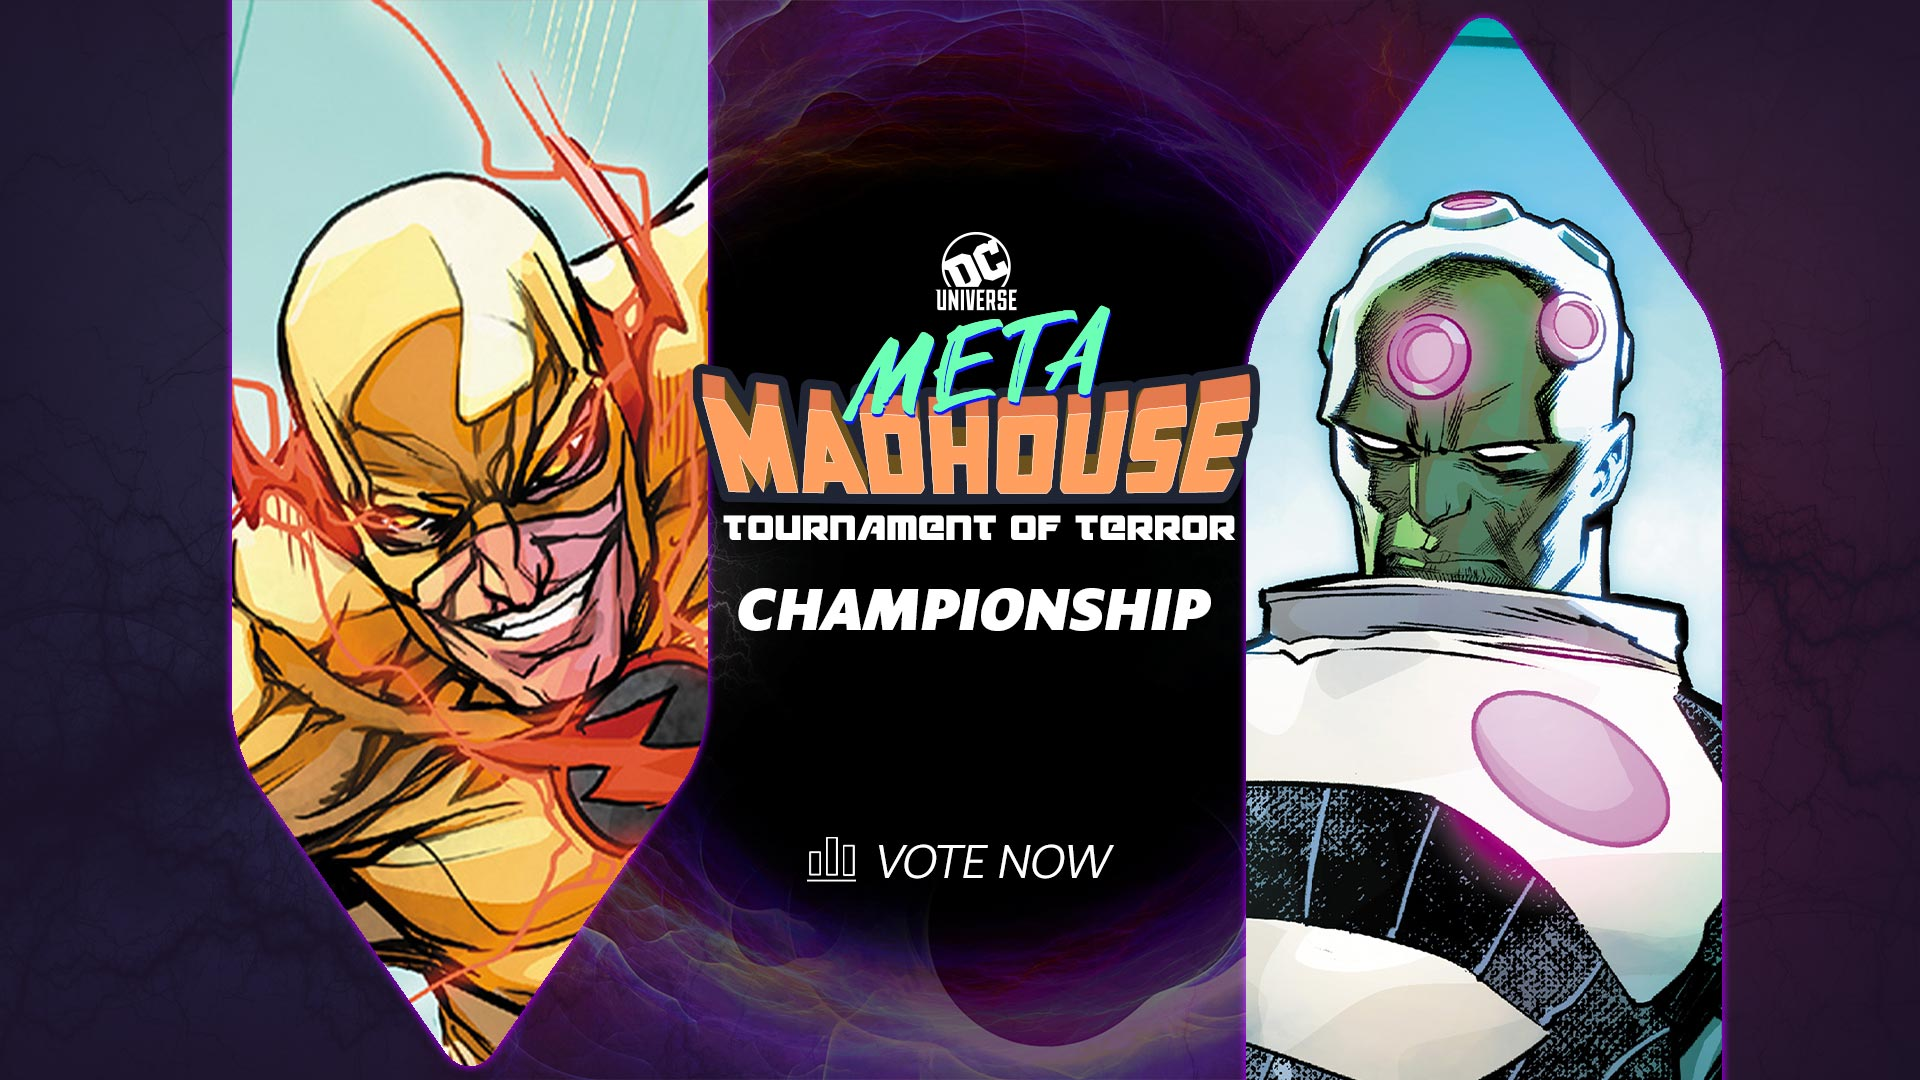 MM_CHAMPIONSHIPS_-VOTE_2-players.jpg